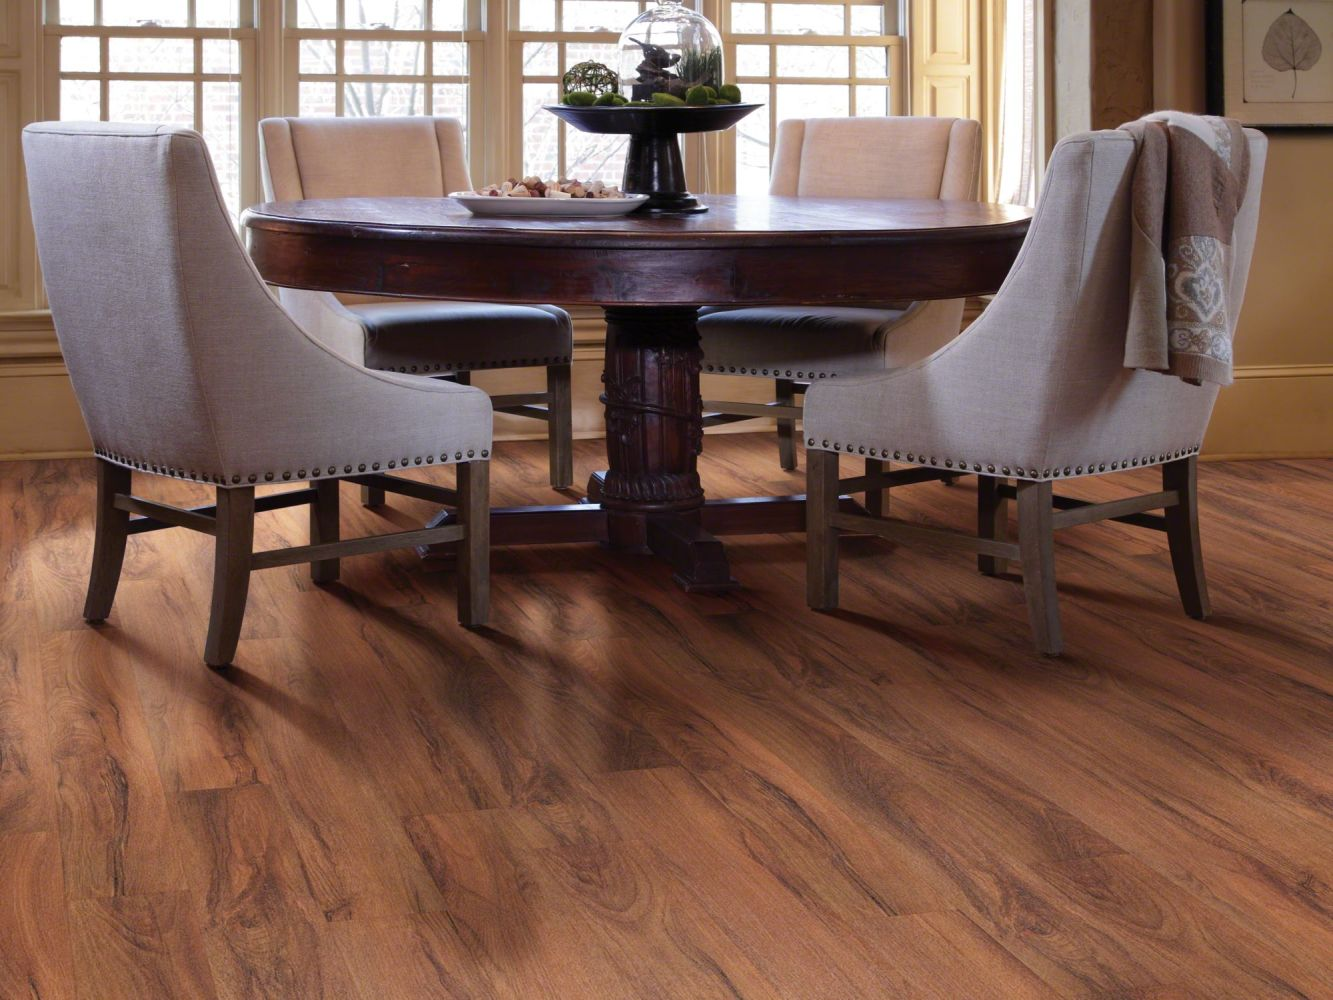 Shaw Floors Vinyl Residential Columbia 6 Coastal 00612_0335V